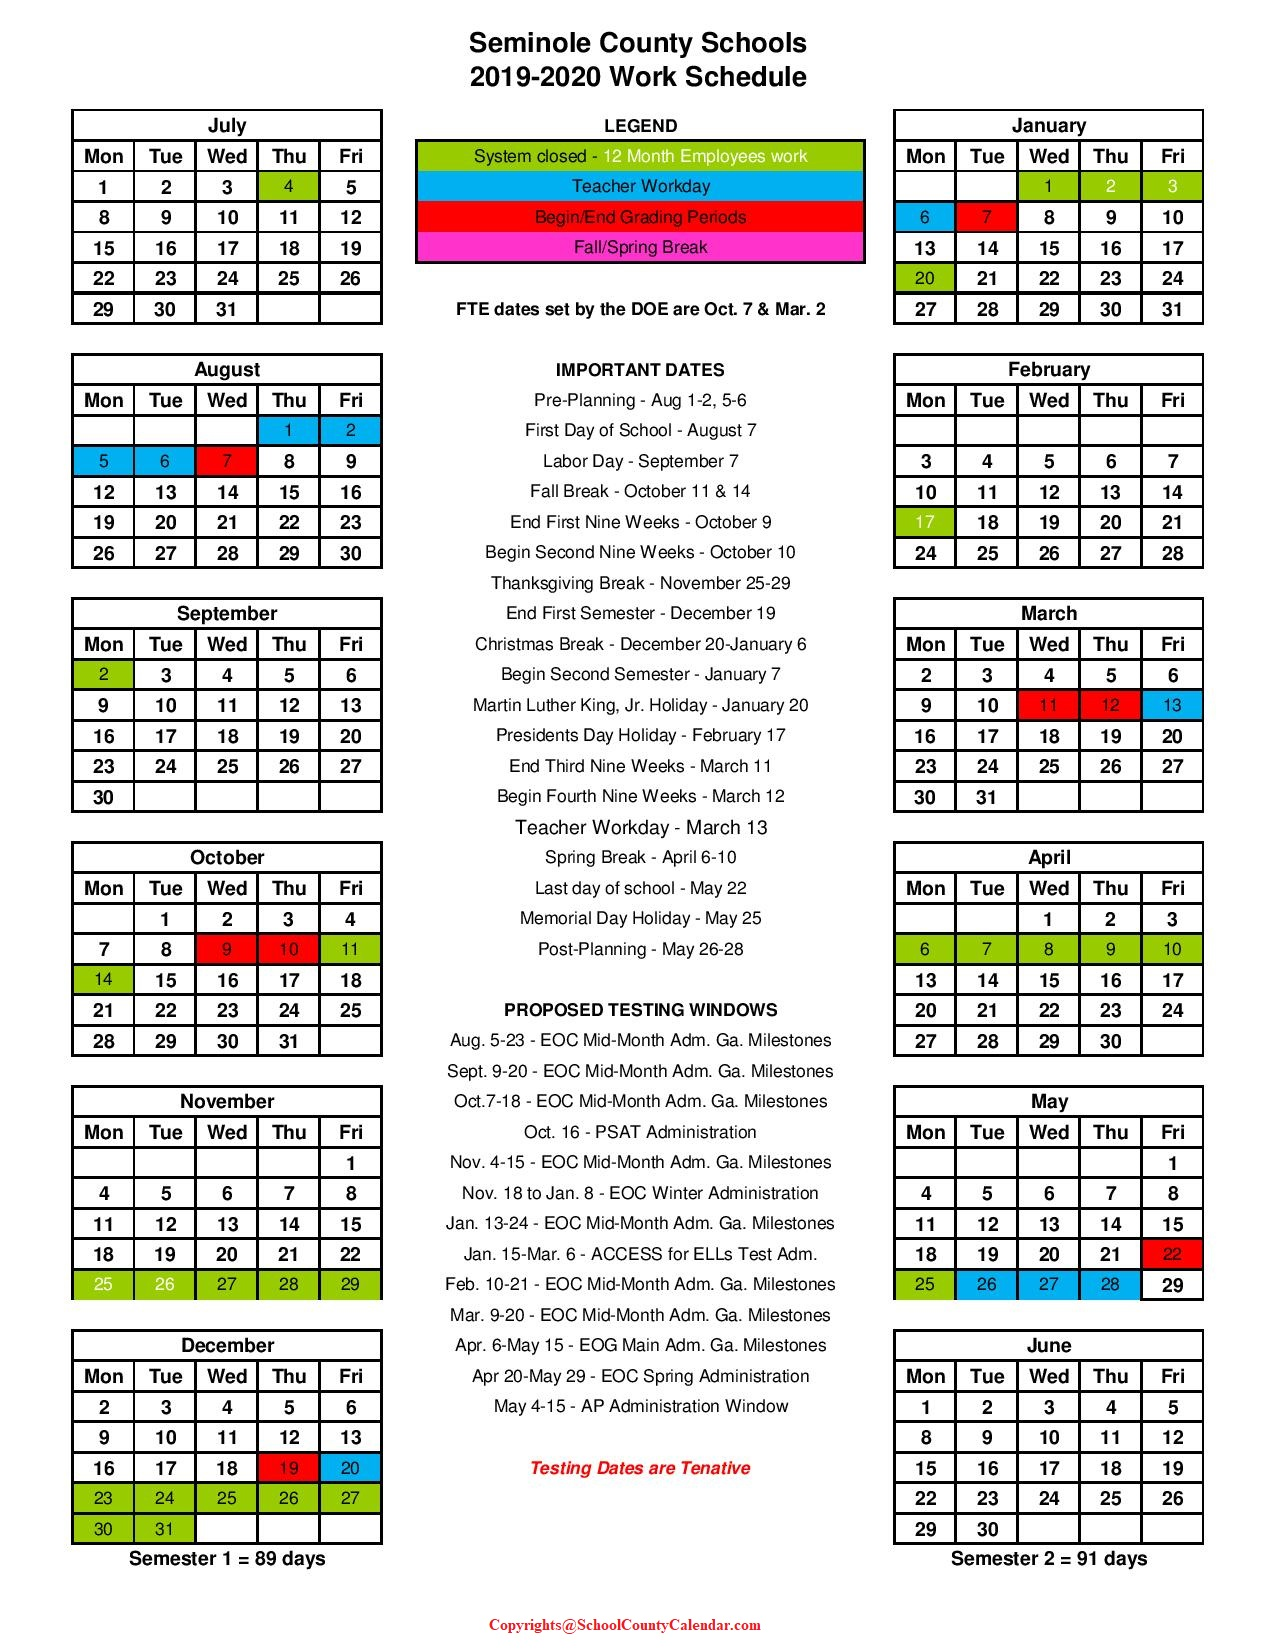 Seminole County School Calendar